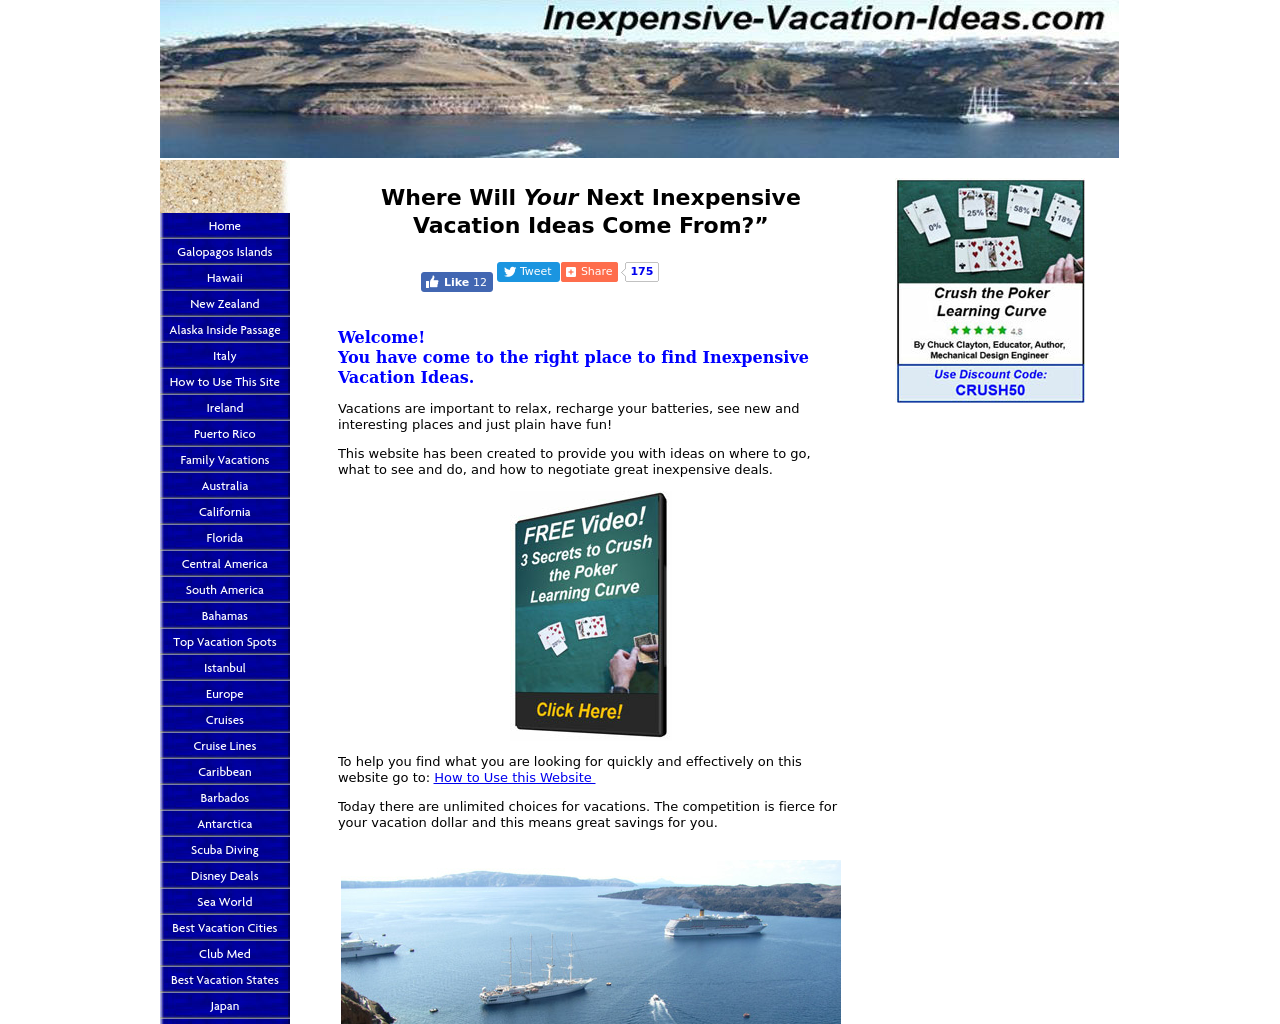 Inexpensive-Vacation-Ideas-Advertising-Reviews-Pricing